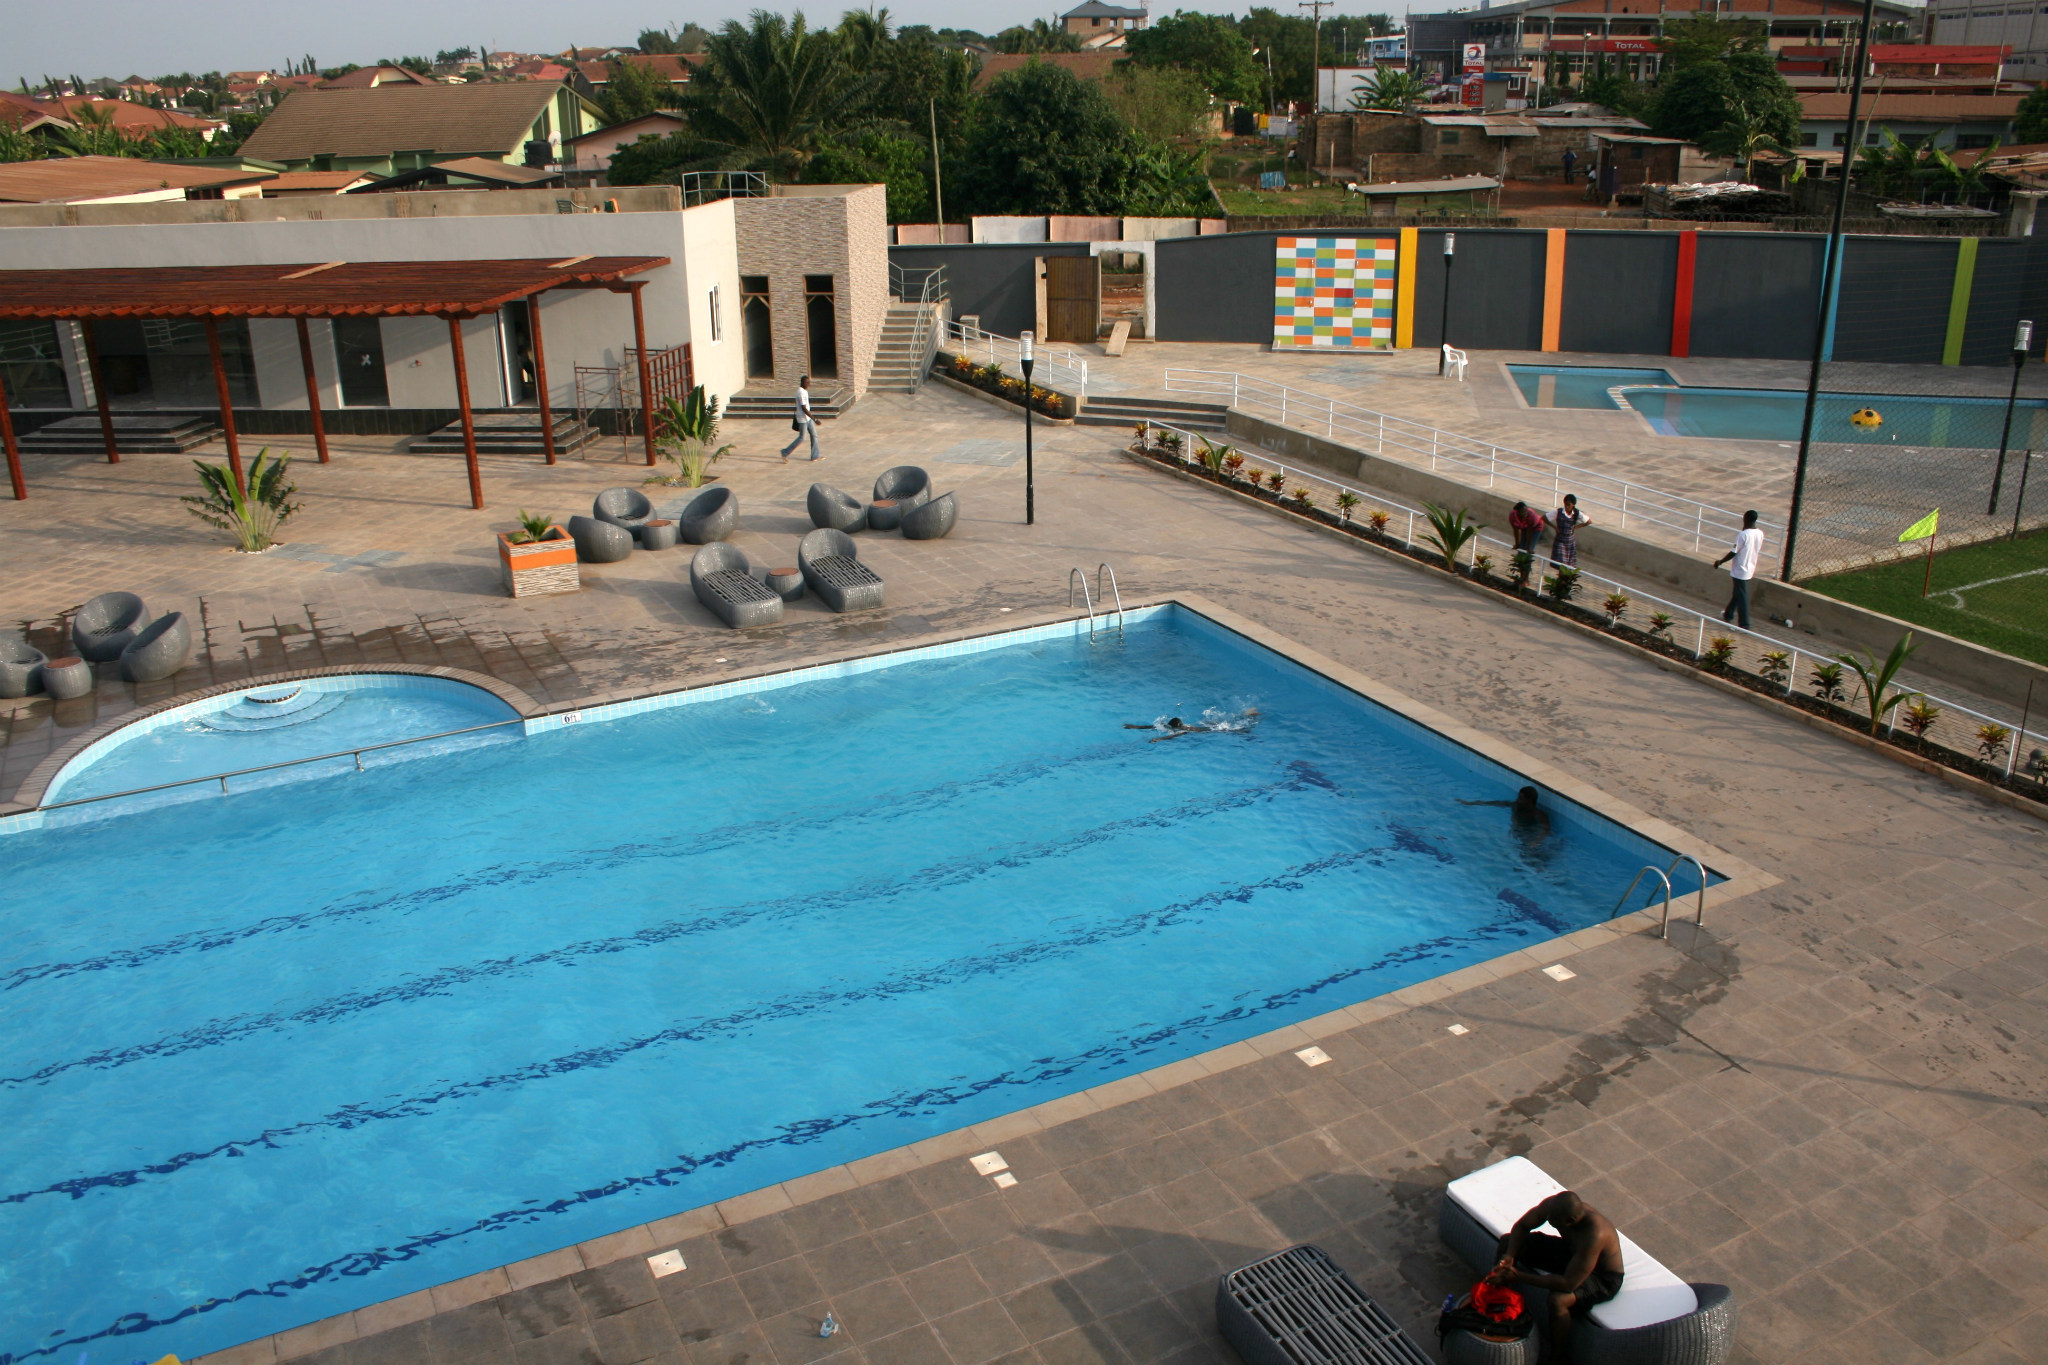 Footie and swimming at Lizzy Sports Complex